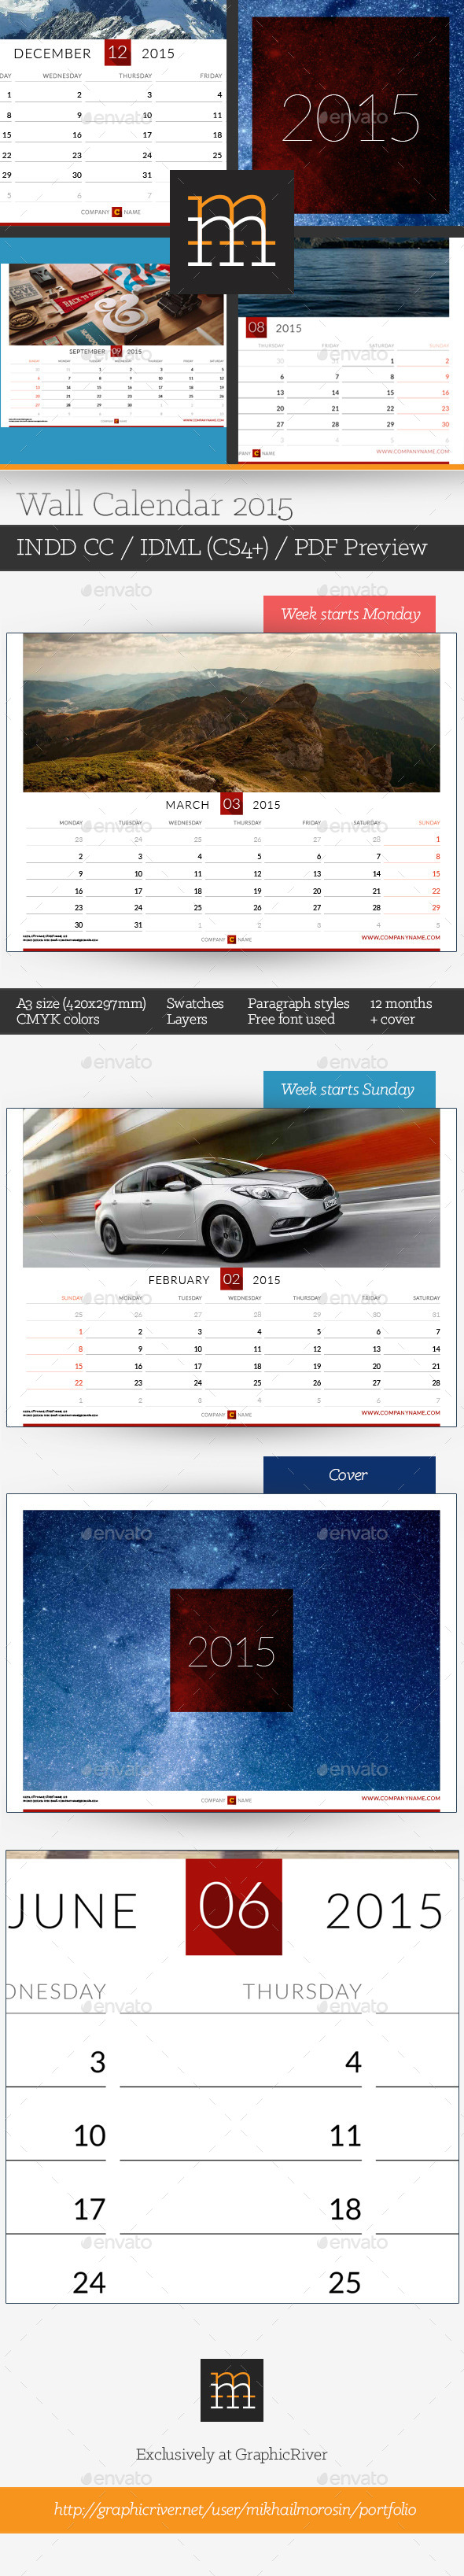 GraphicRiver Wall Calendar 2015 9809396